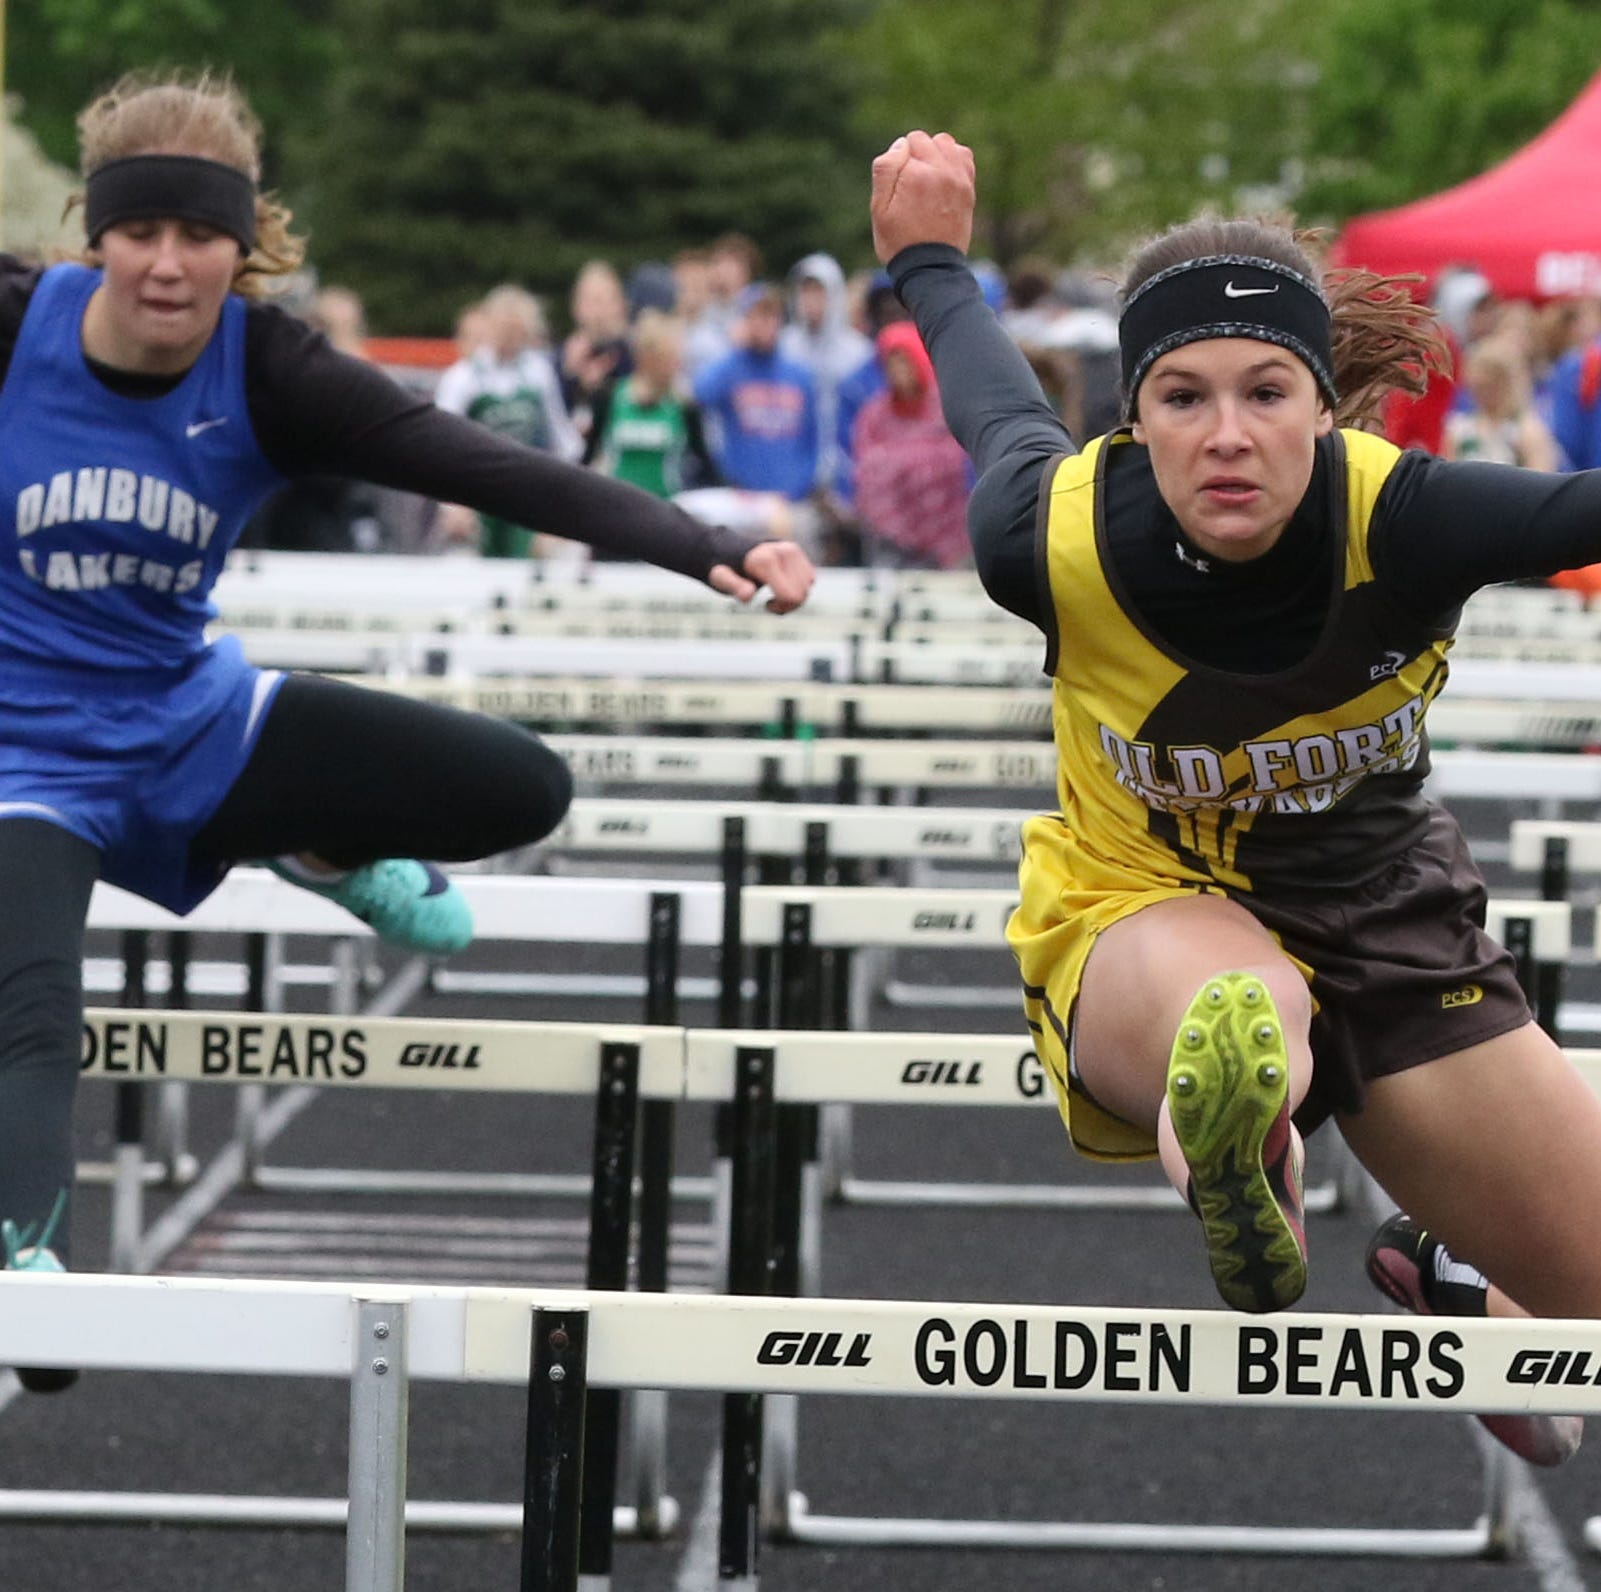 Old Fort's Clouse ready to adjust in unpredictable 300 hurdles